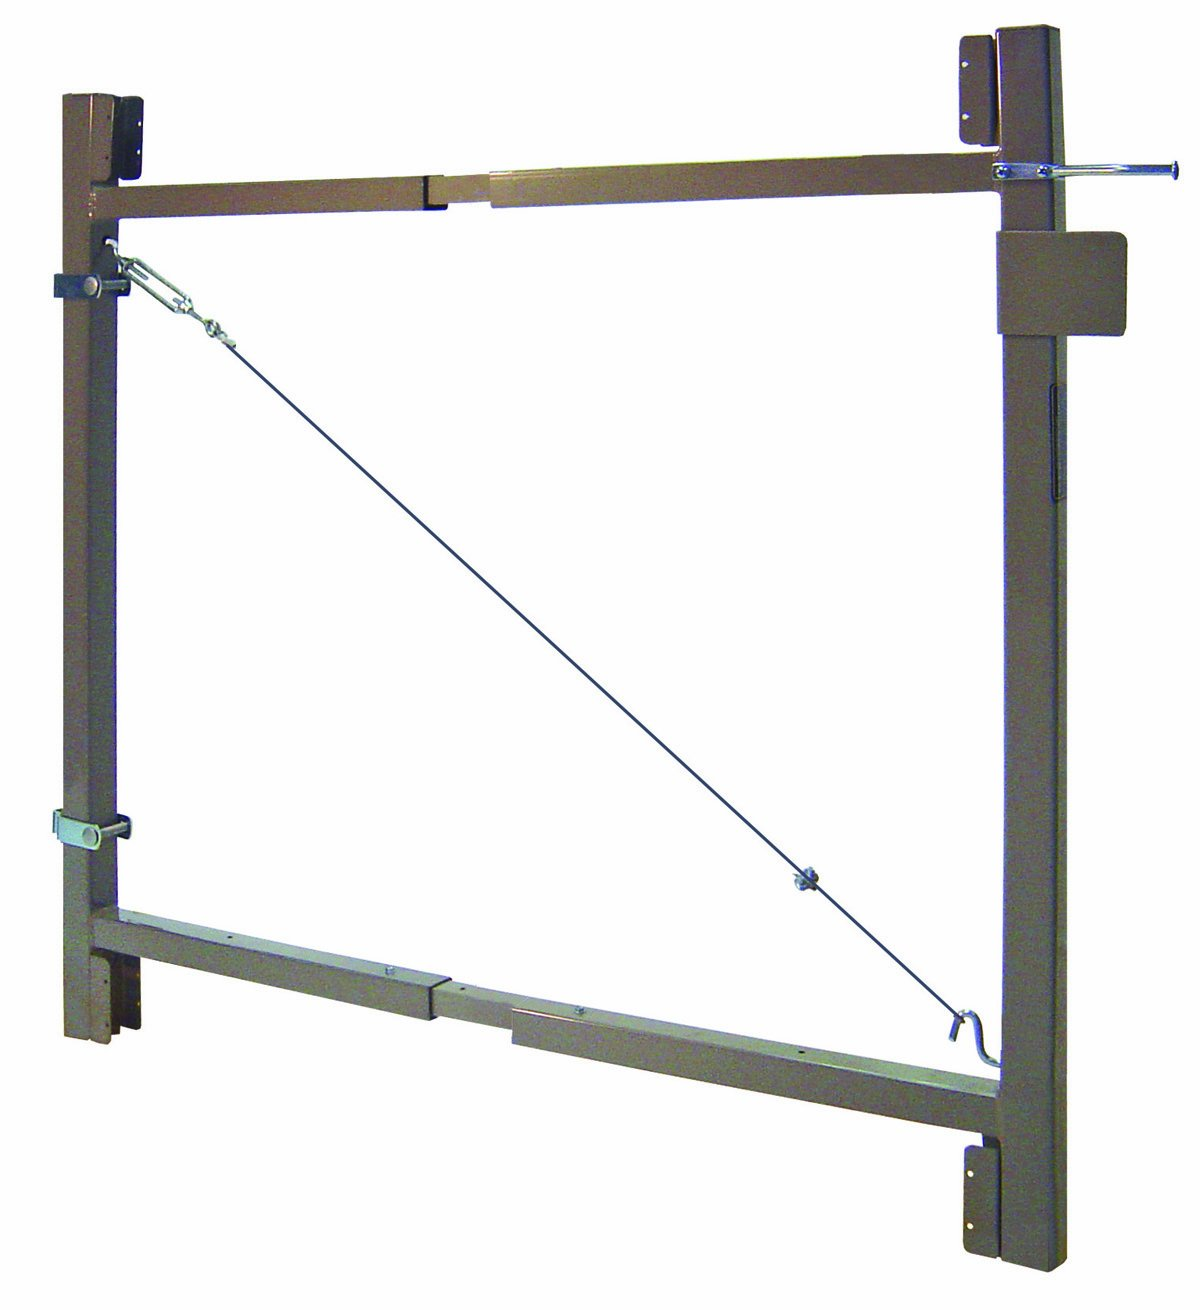 Adjust-A-Gate Steel Frame Gate Building Kit (36''-60'' wide openings,3' - 4' high fence)